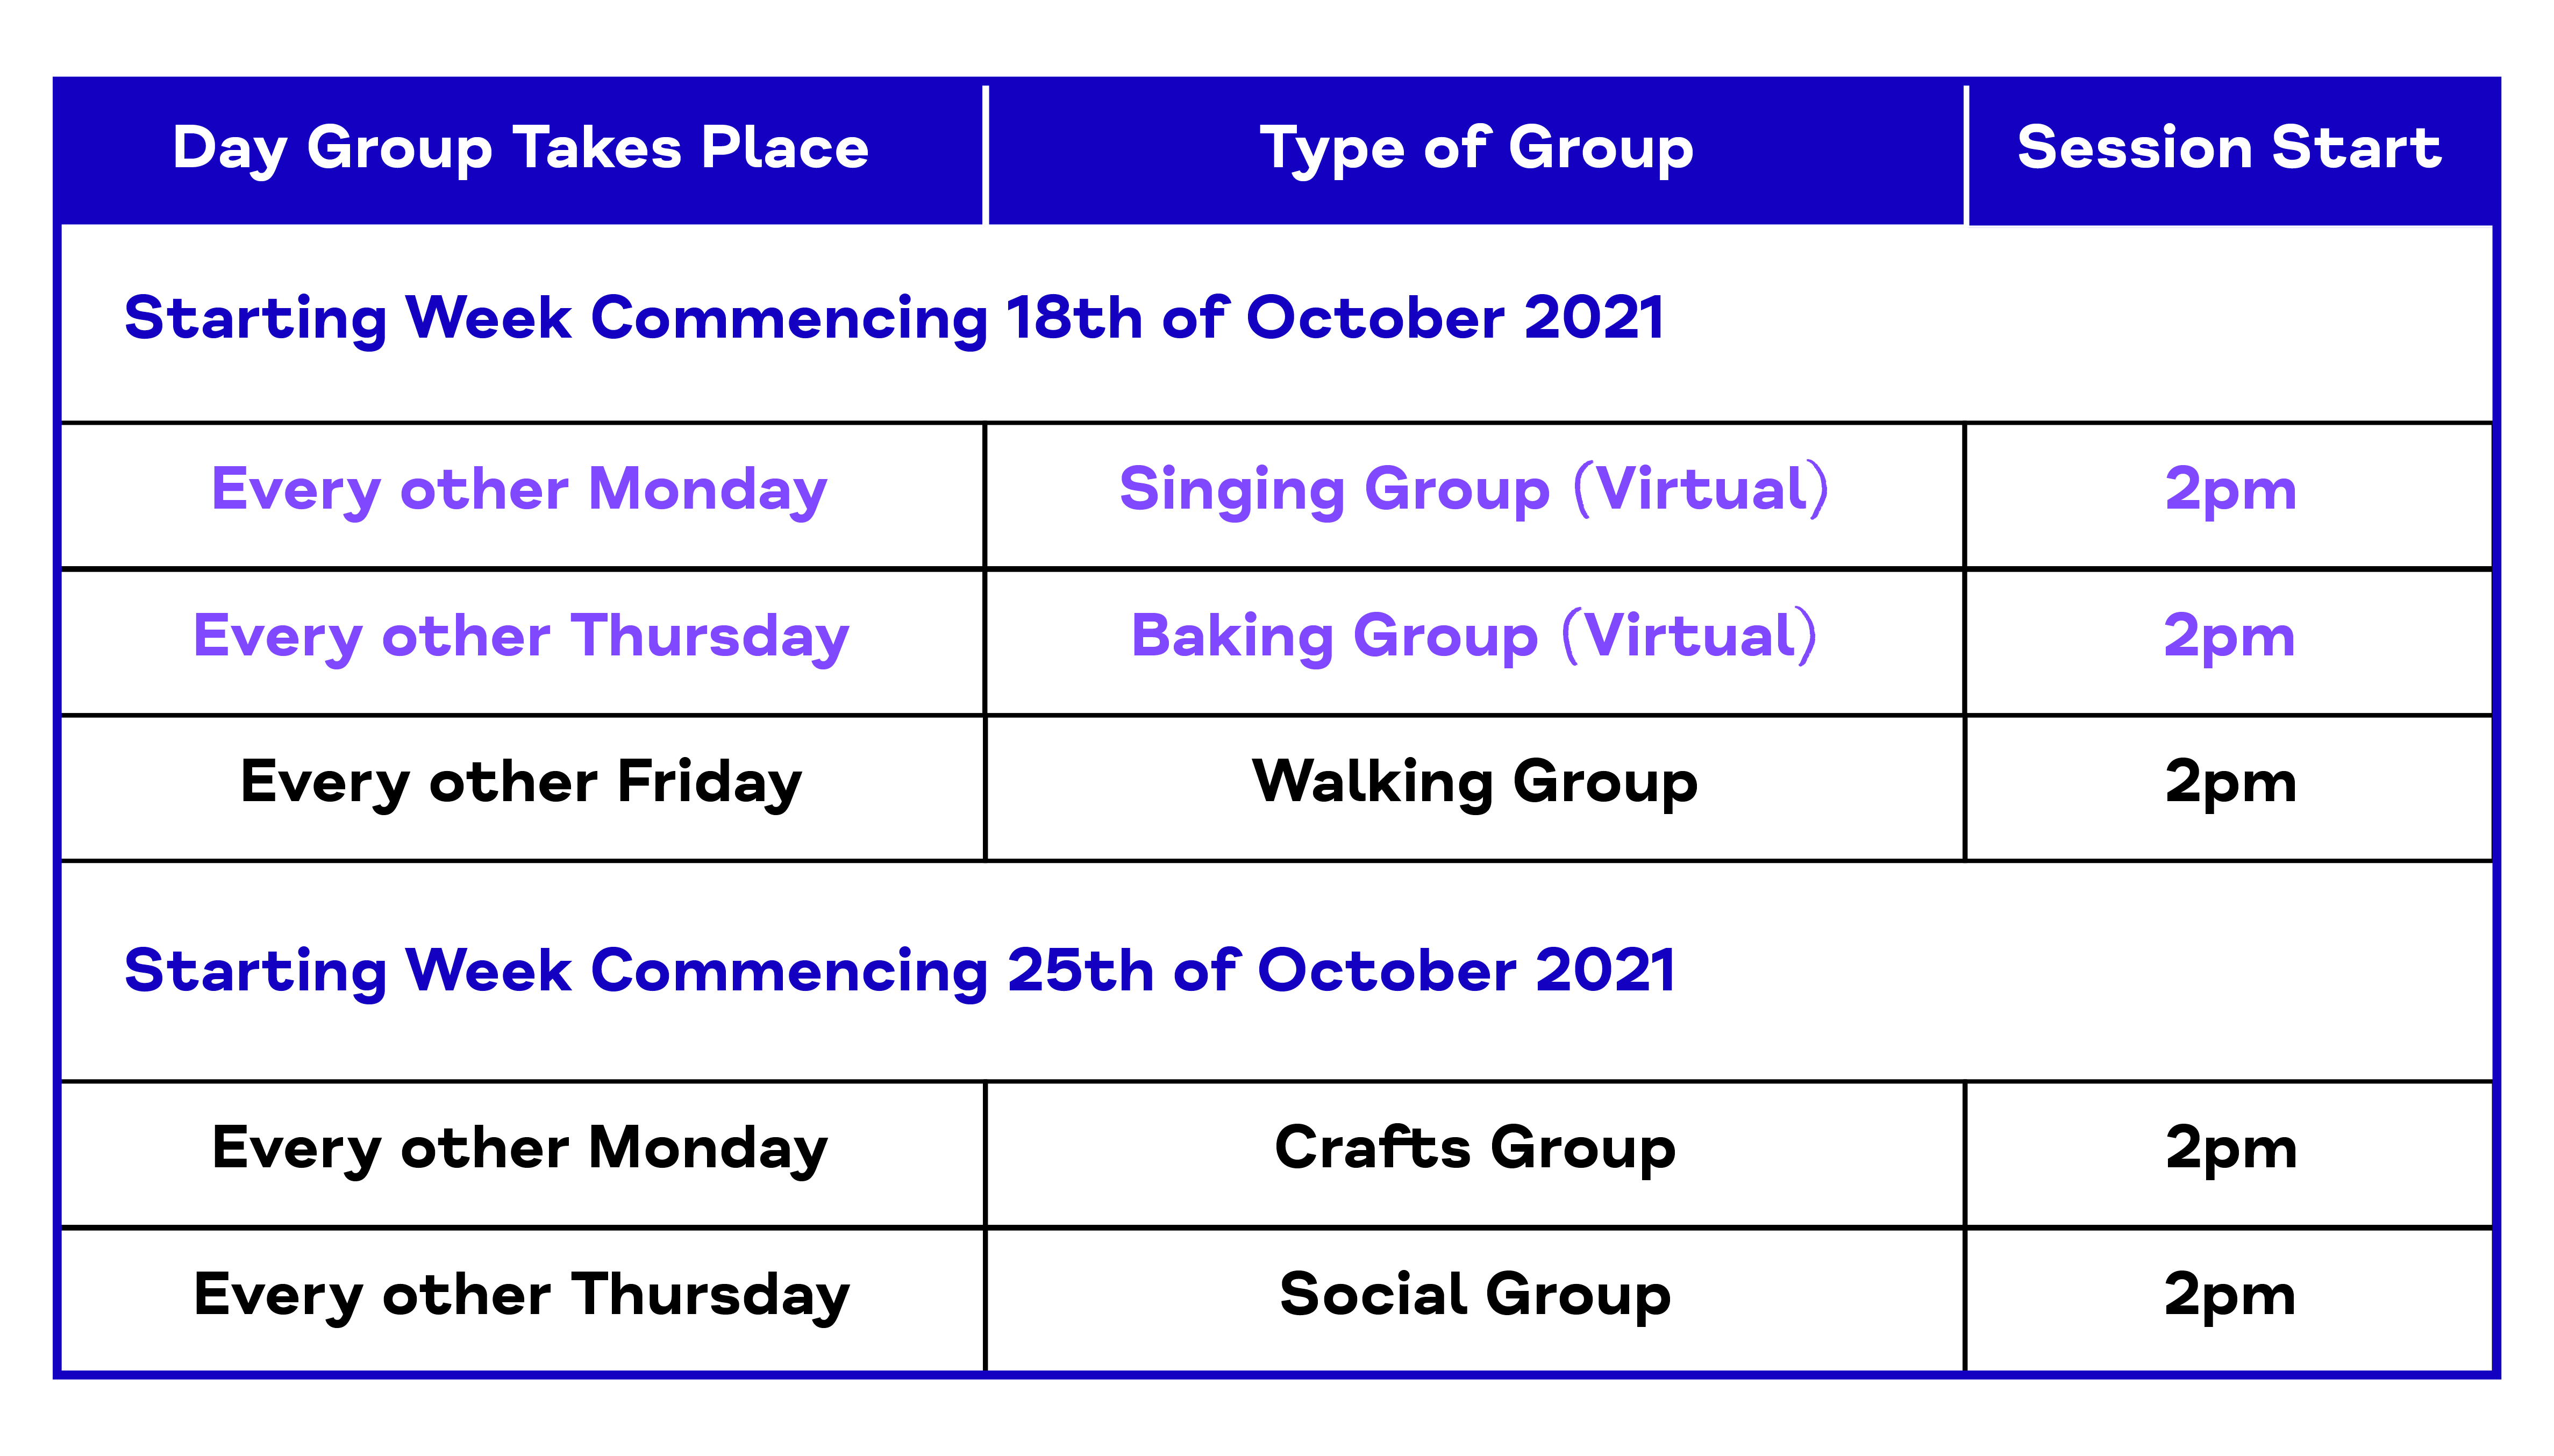 Day Group Takes Place. Type of Group. Session. Starting Week Commencing 18th of October 2021. Every other Monday. Singing Group (Virtual). 2pm. Every other Thursday. Baking Group (Virtual). 2pm. Every other Friday. Walking Group. 2pm. Starting Week Commencing 25th of October 2021. Every other Monday. Crafts Group. 2pm. Every other Thursday. Social Group. 2pm.